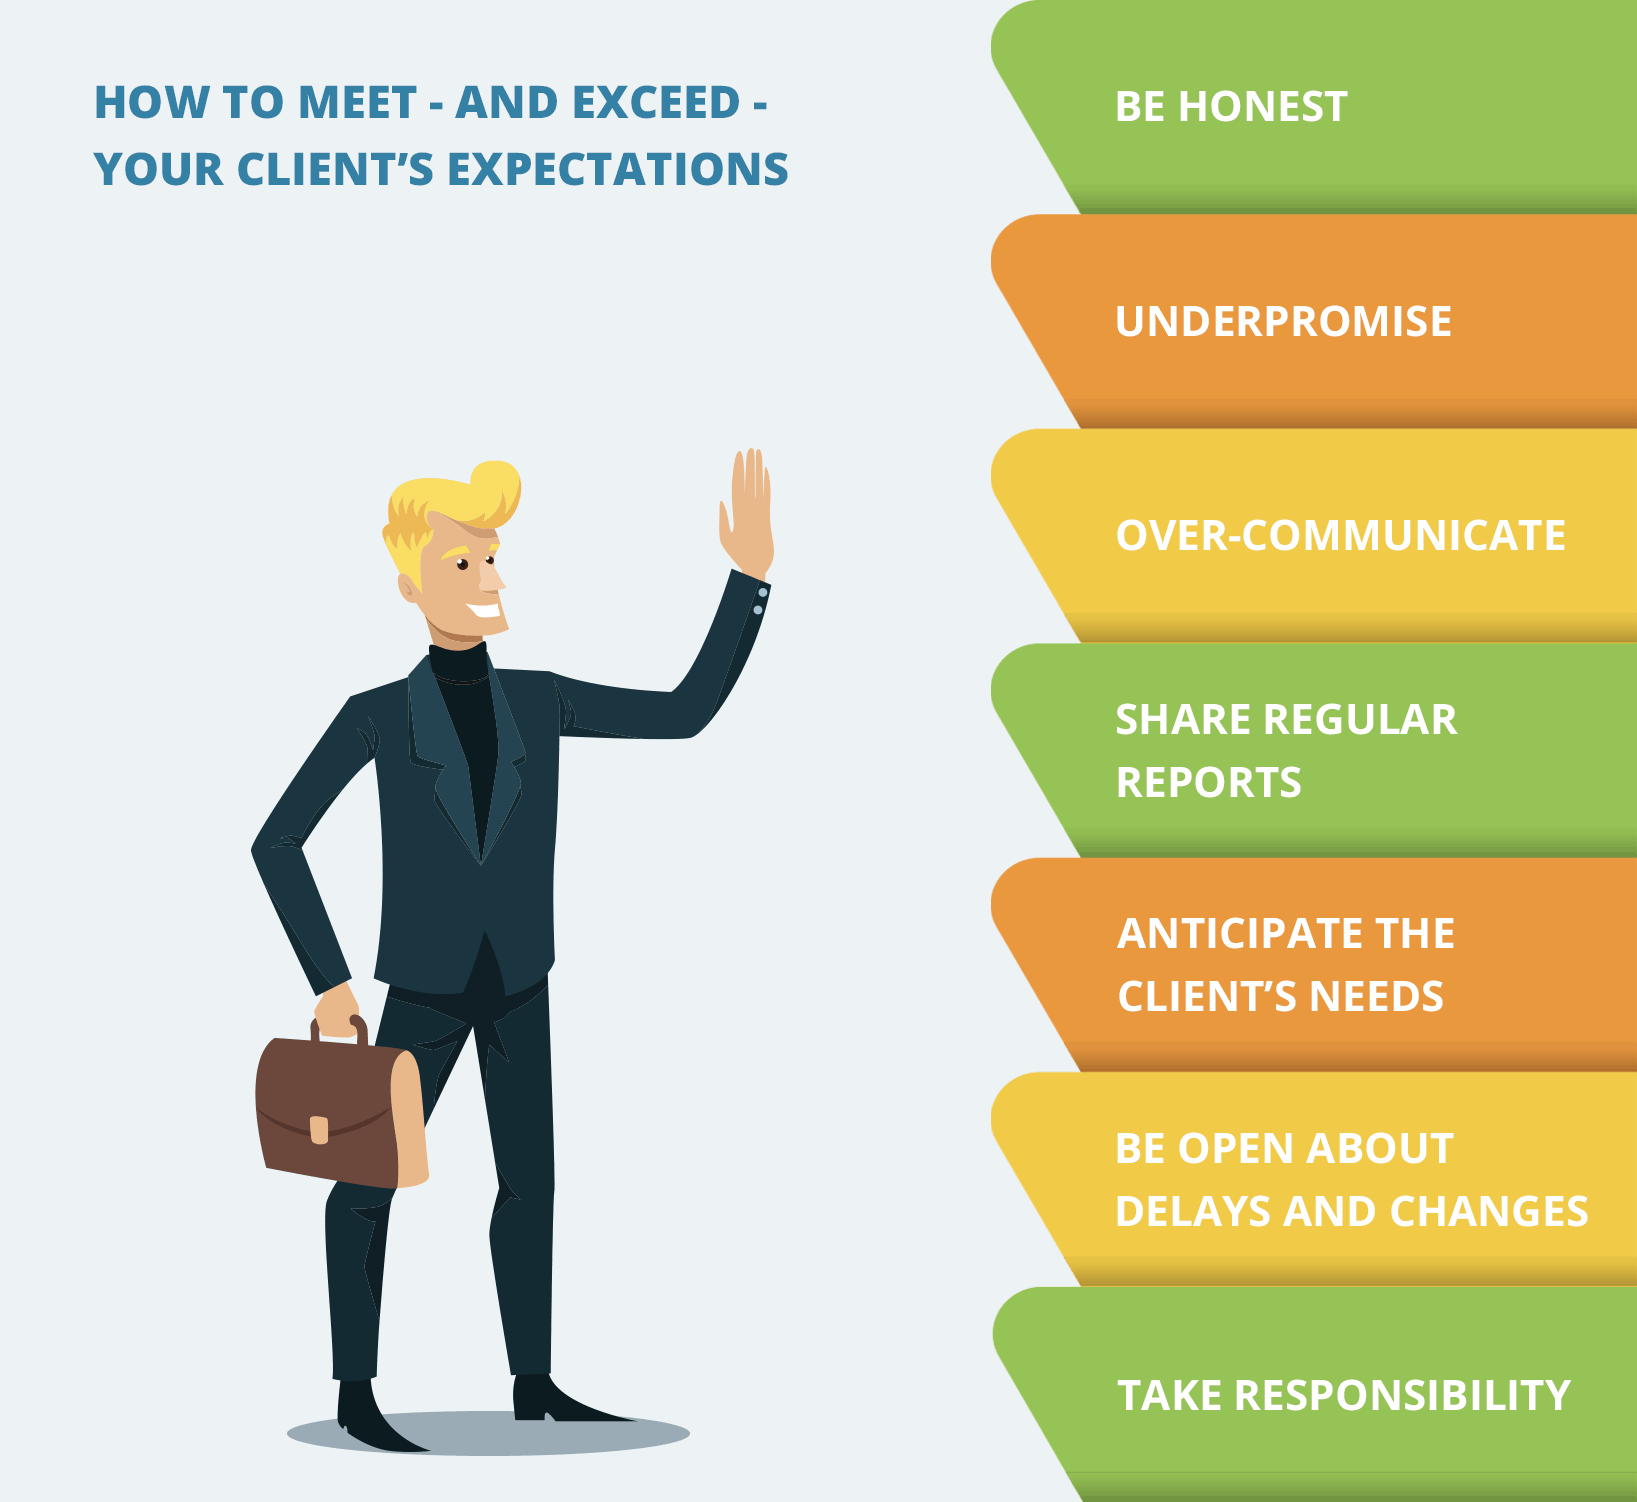 How to Meet - and Exceed - Your Client's Expectations